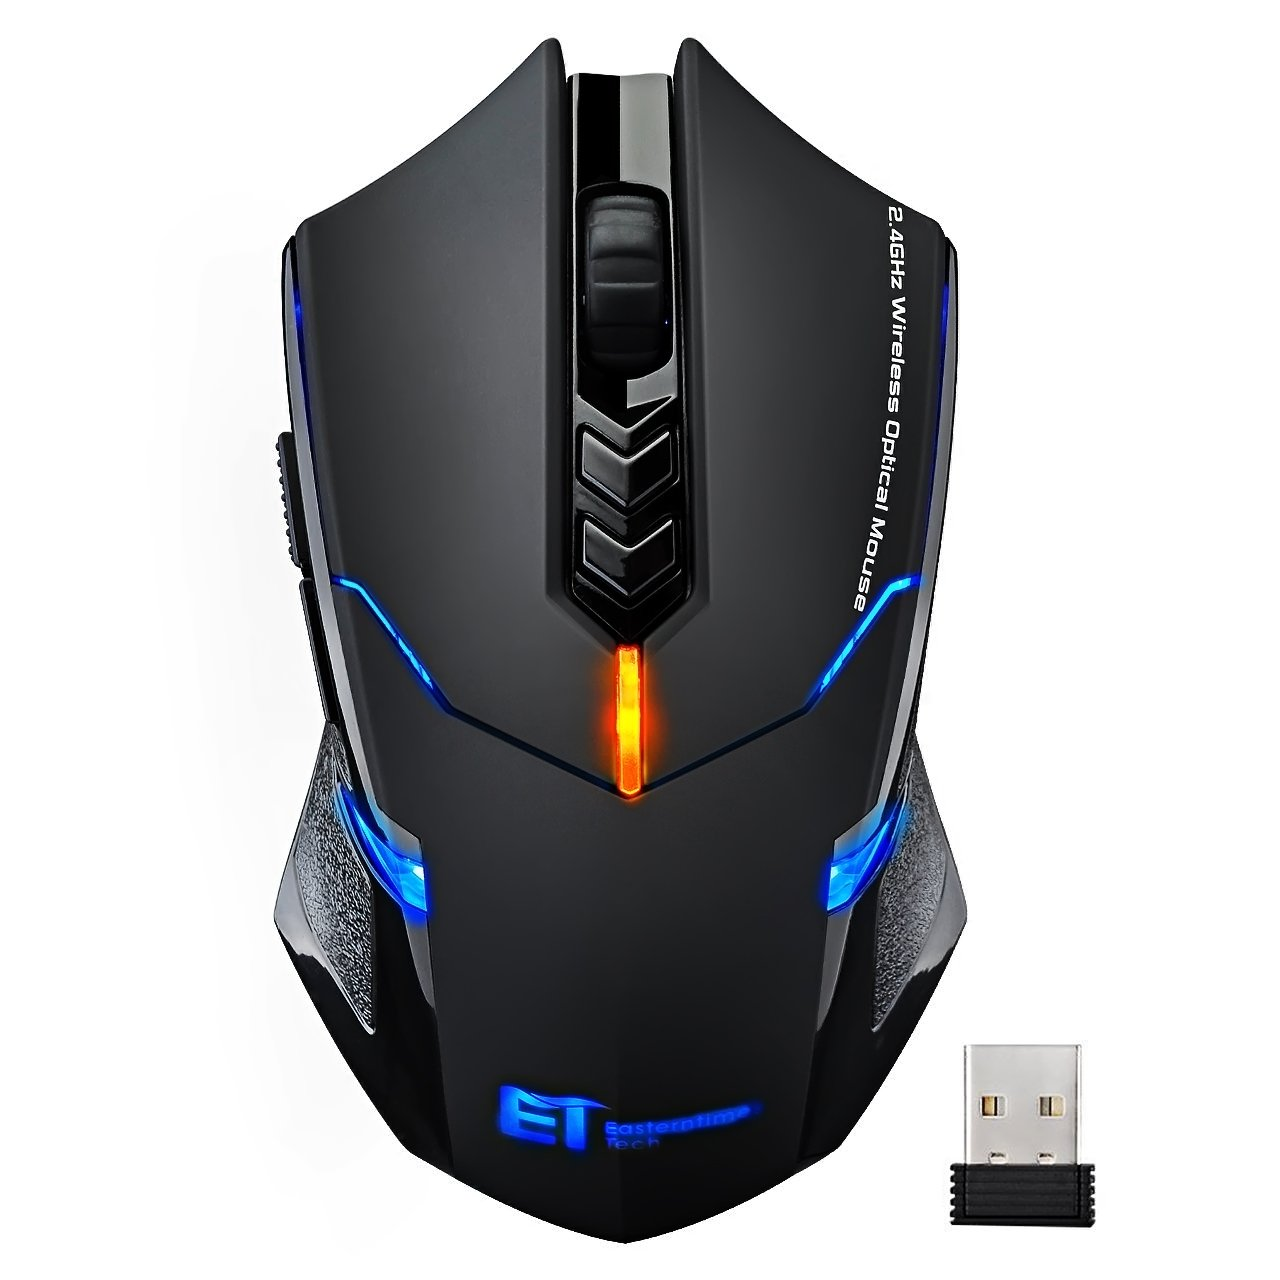 Wireless Mouse, VicTsing 2 4G USB Cordless Optical Gaming & Office  Ergonomic Mice with 7 Quiet Click Buttons, 5 Adjustable DPI, Dual Energy  Saving,